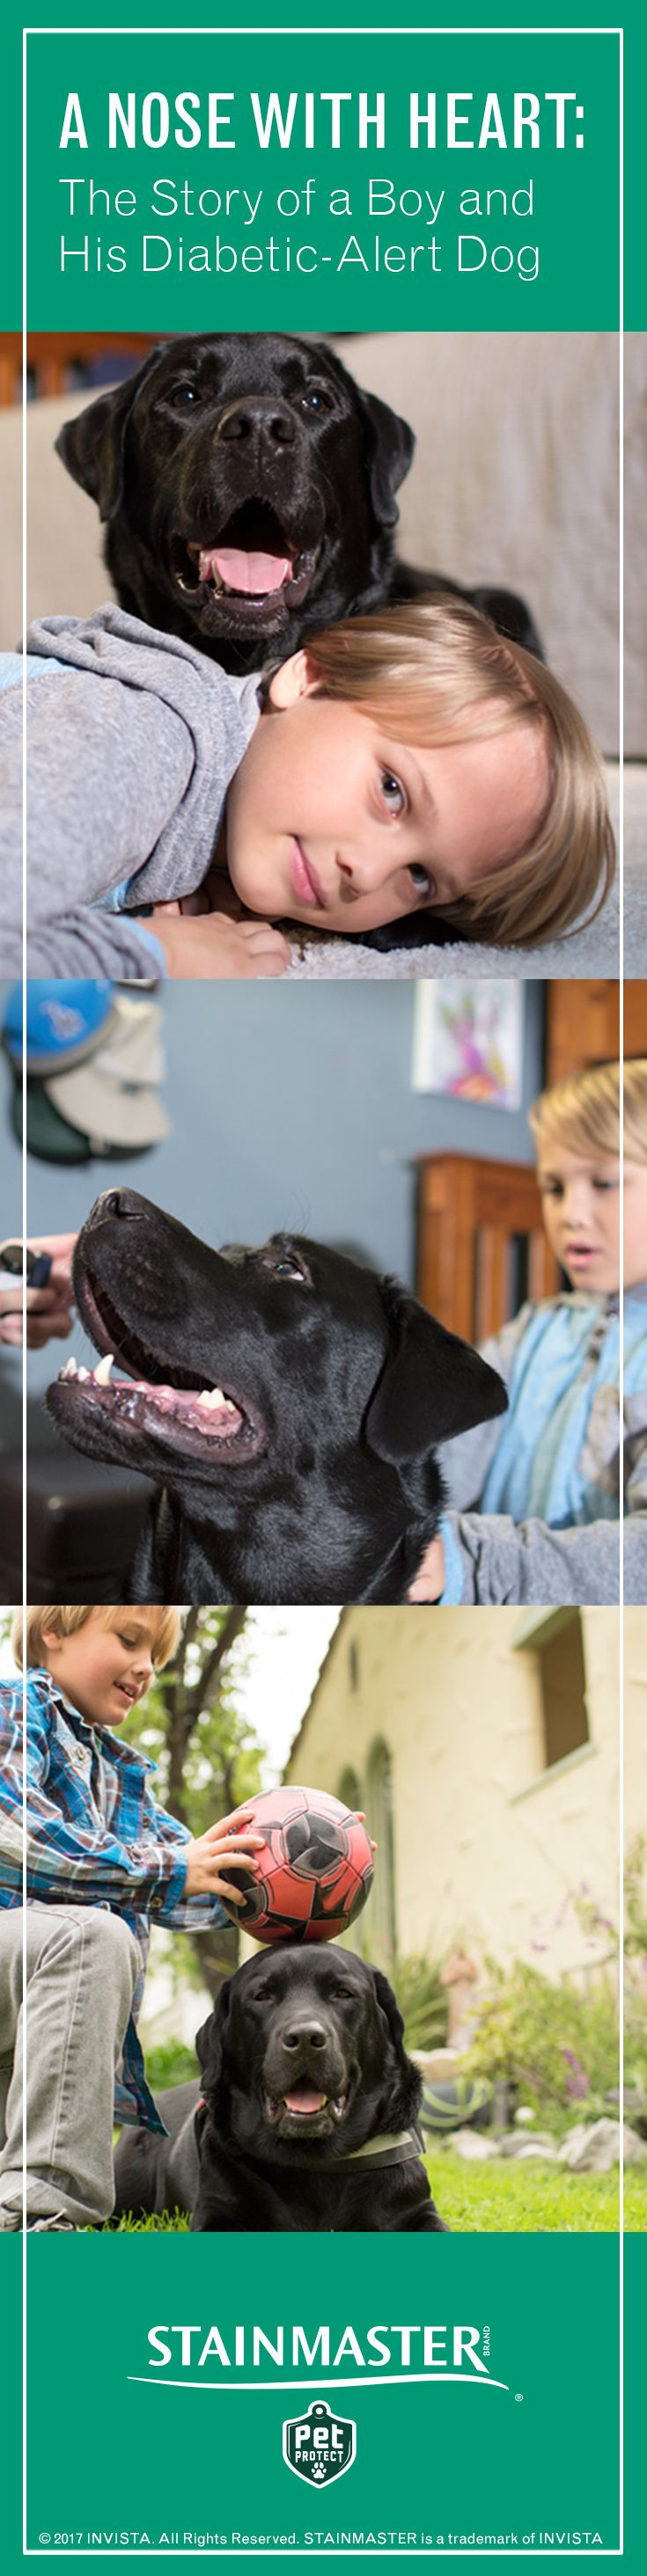 Luke suffers from Type 1 diabetes, but service dog Jedi is there night and day to monitor Luke's sugar levels—and to be his favorite playmate. Follow the story of this diabetic-alert dog.